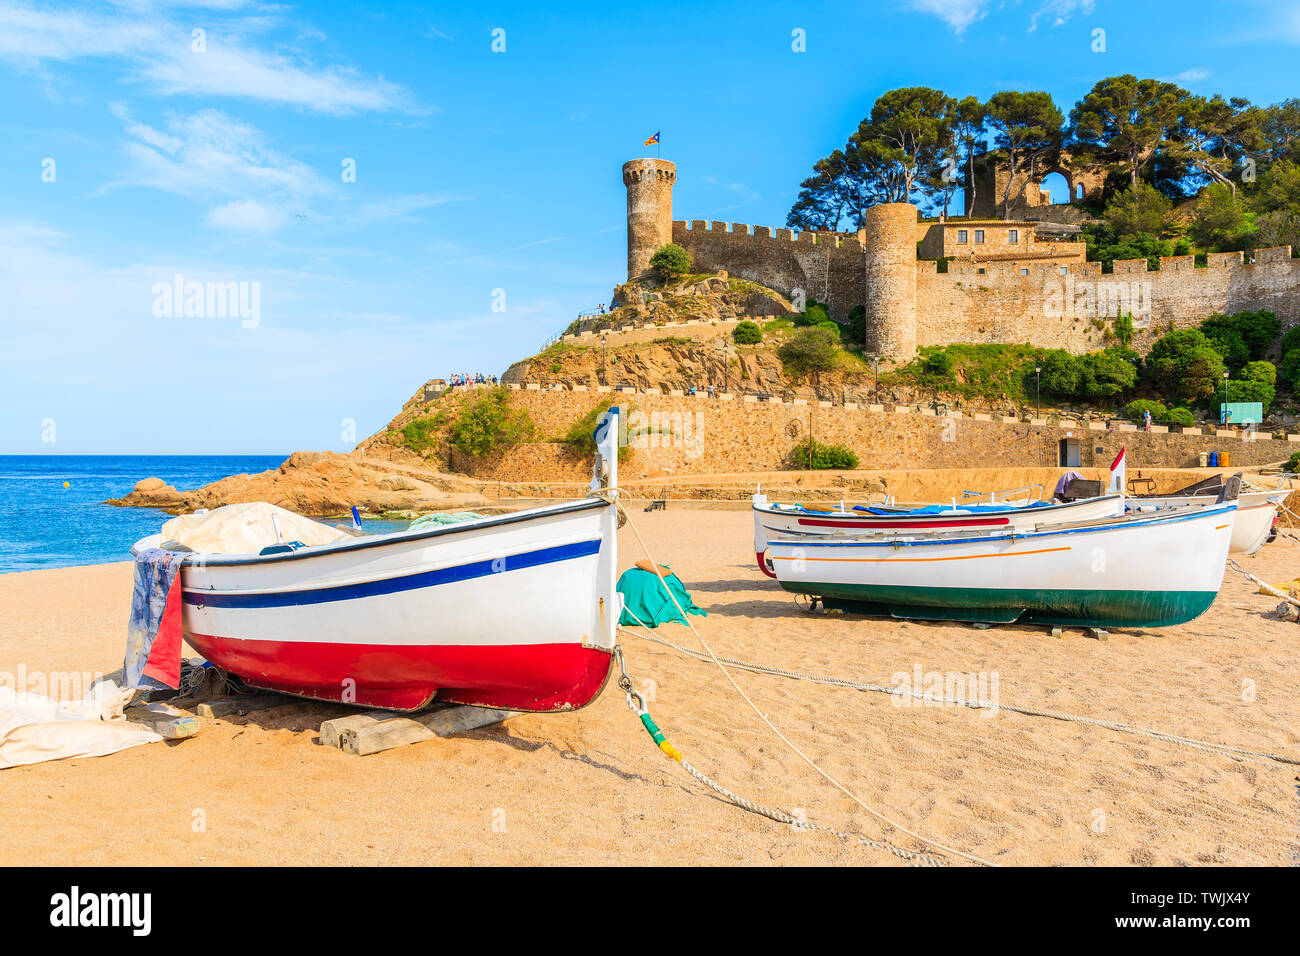 Fishing boats on golden sand beach in bay with castle in background, Tossa de Mar, Costa Brava, Spain Stock Photo